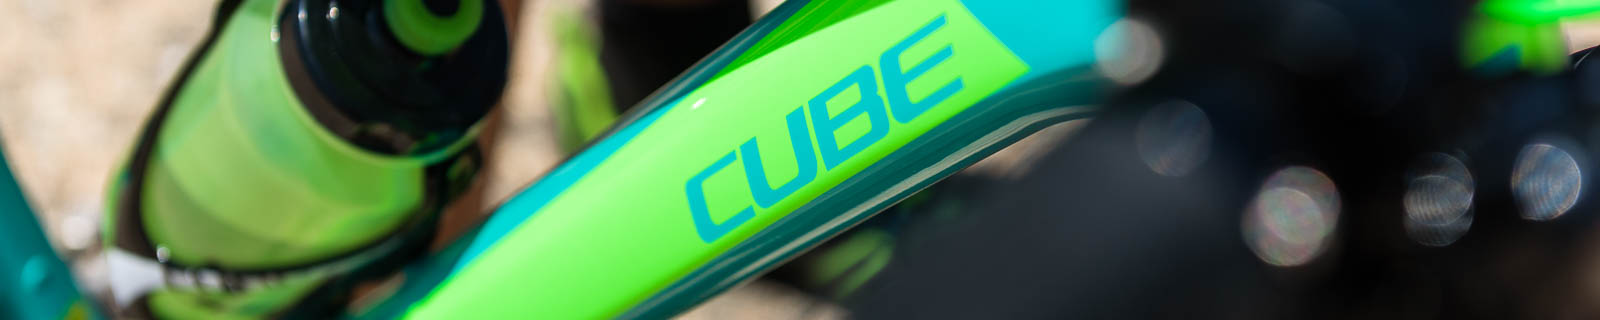 Cube – Hochwertige Bikes made in Germany